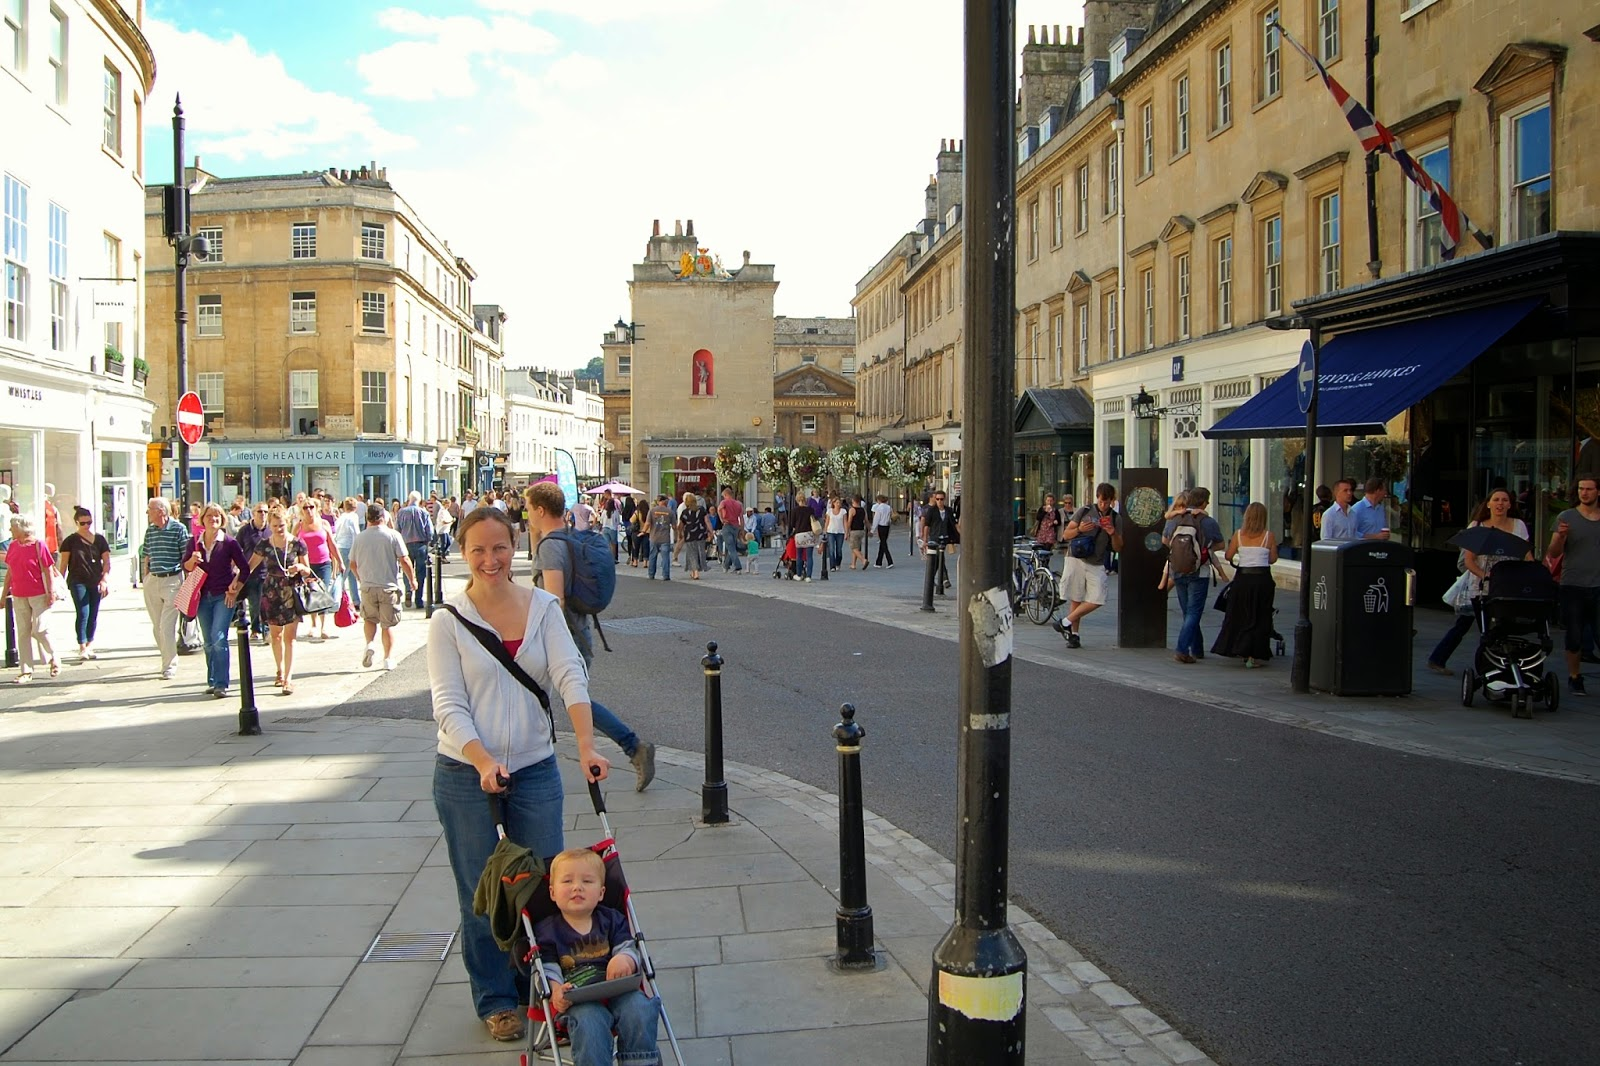 Streets of Bath, England